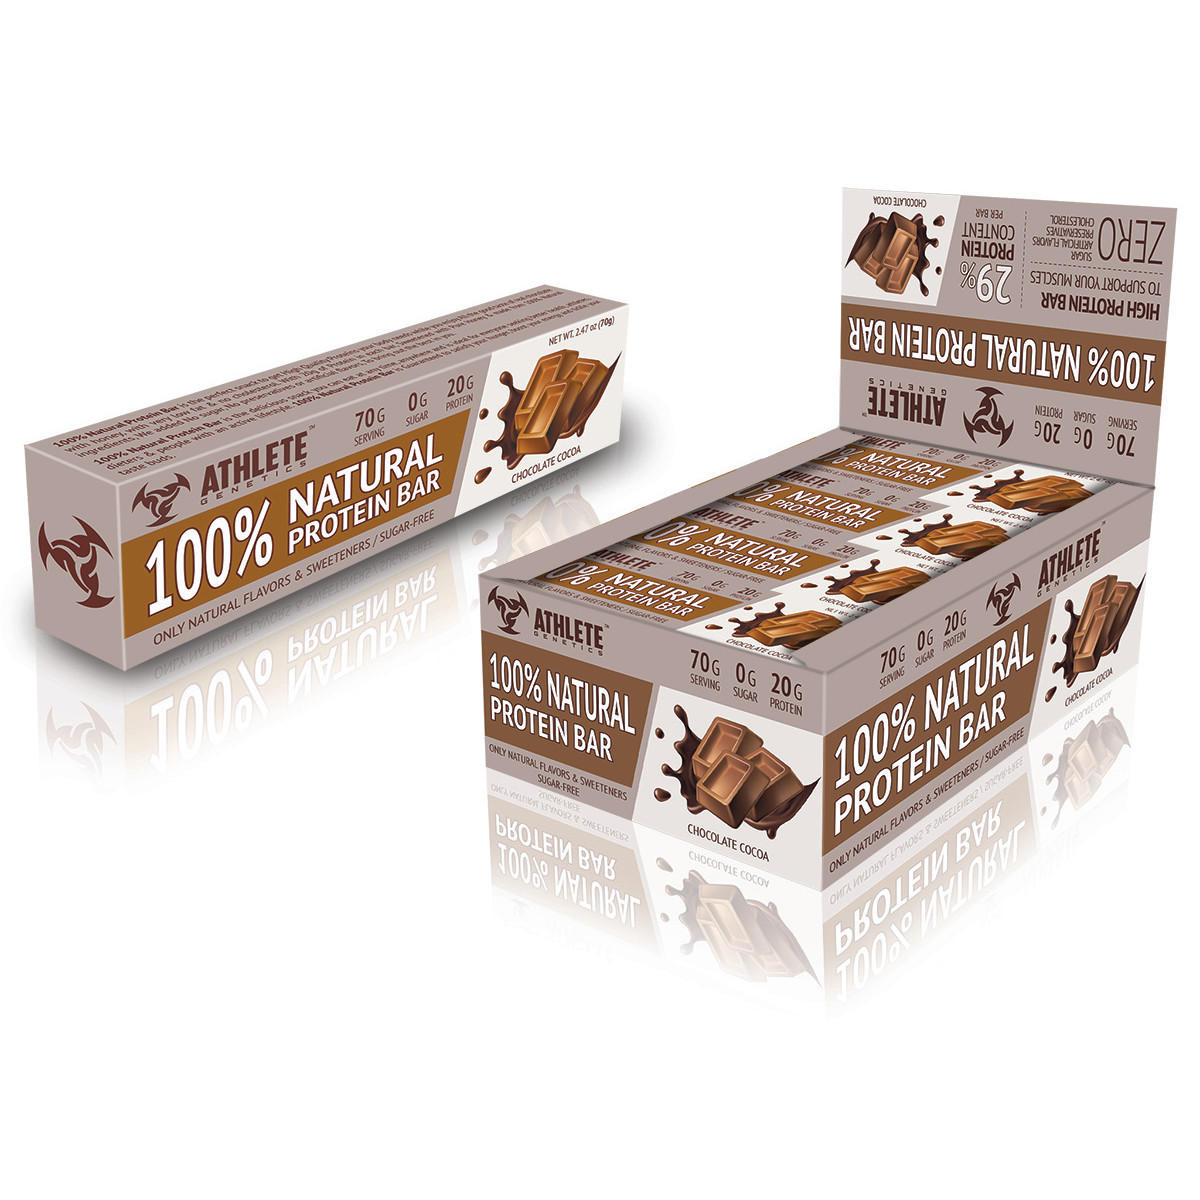 Батончик Athlete Genetics - 100% Natural Protein Bar (70 грамм)  chocolate cocoa/шоколад какао